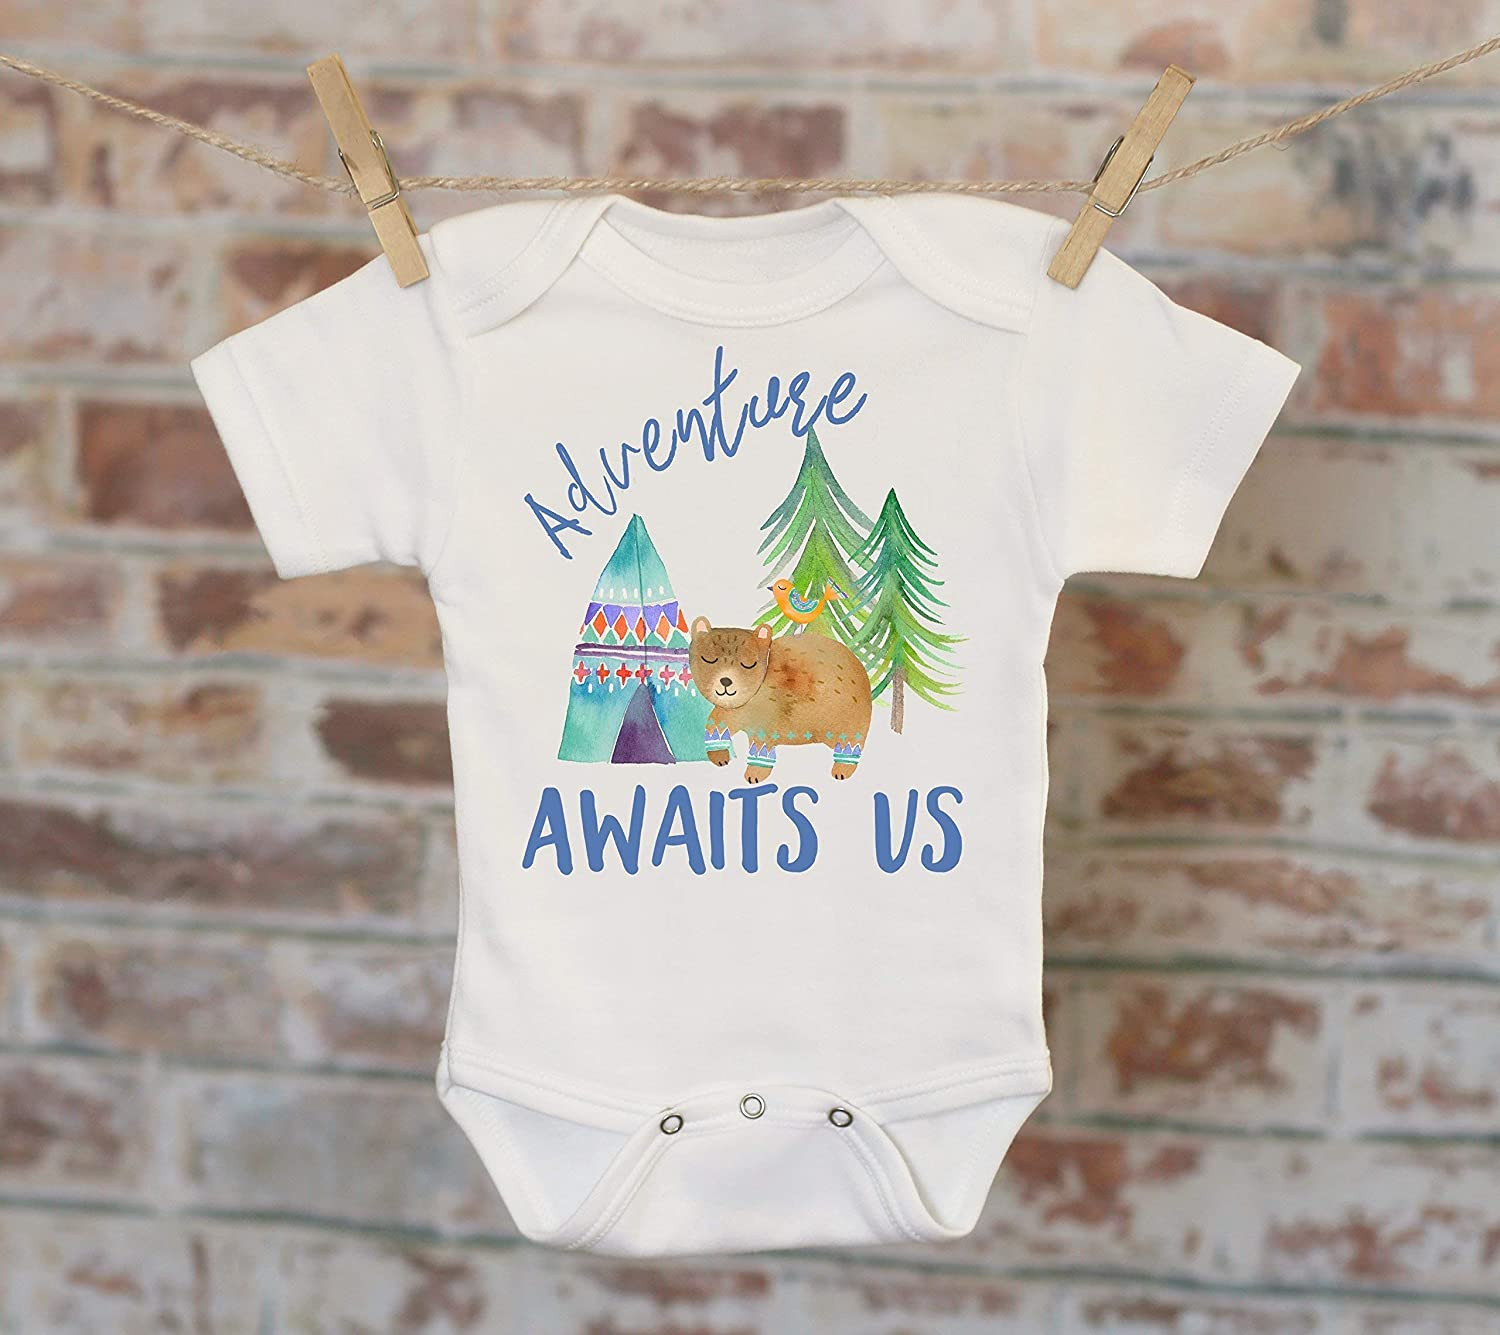 Adventure Awaits Us Onesie® in Blue, Woodland Animals Onesie, Bohemian Onesie, Cute Baby Bodysuit, Cute Onesie, Boho Baby Onesie, Boy Onesie